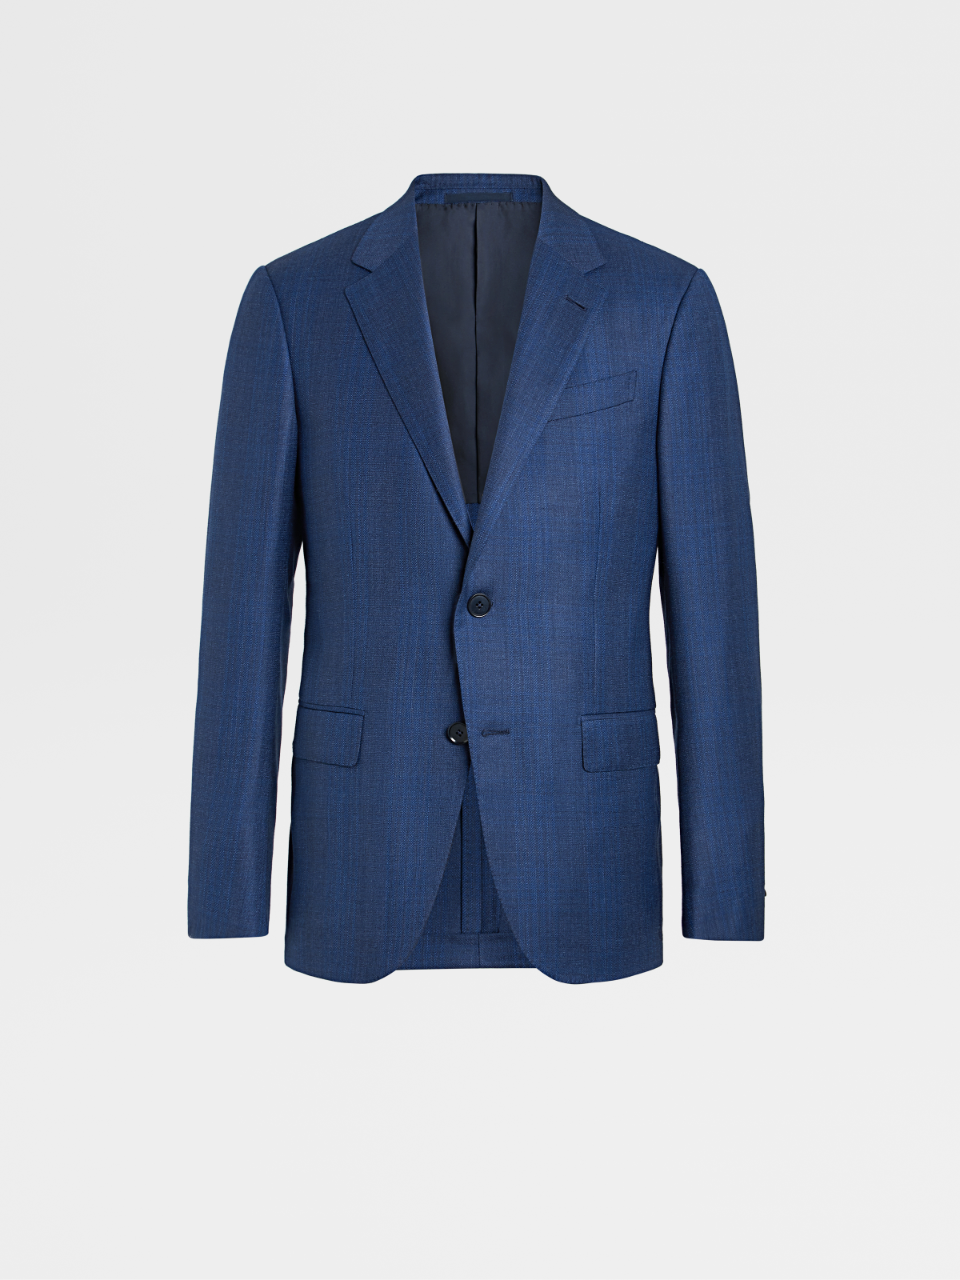 Milano Easy Overcheck AchillFarm™ Notch Lapel Jacket